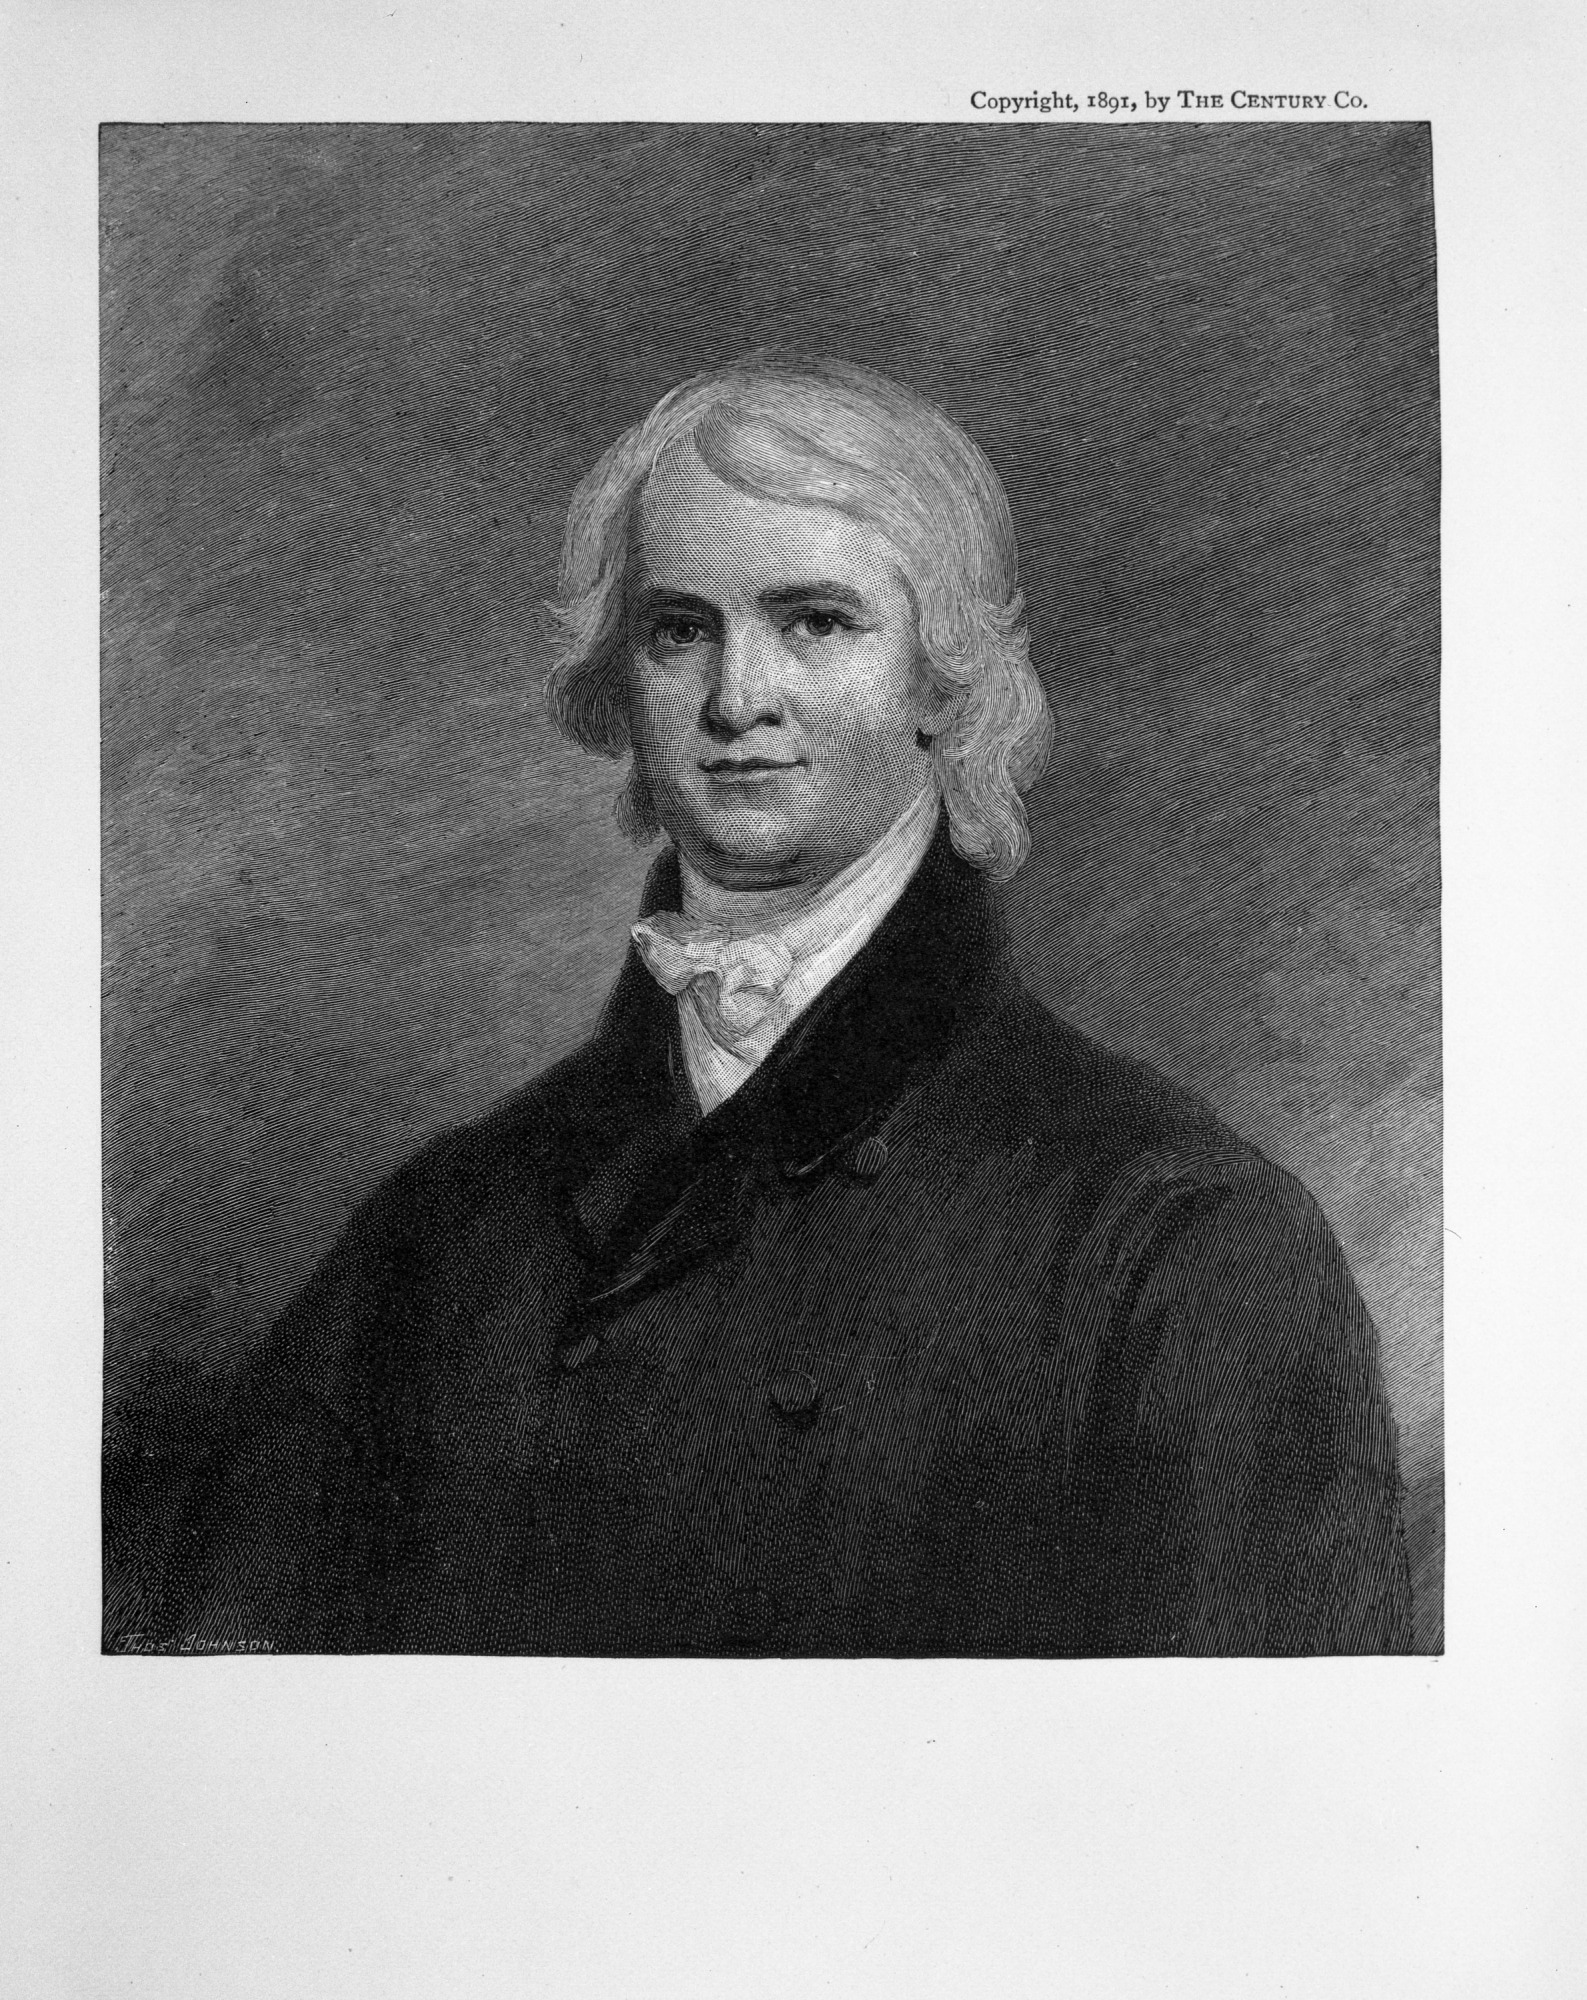 George Mifflin Dallas, Chancellor of Regents, by Joseph Henry Papers Project, c. 1830s, Smithsonian Archives - History Div, SA-448.